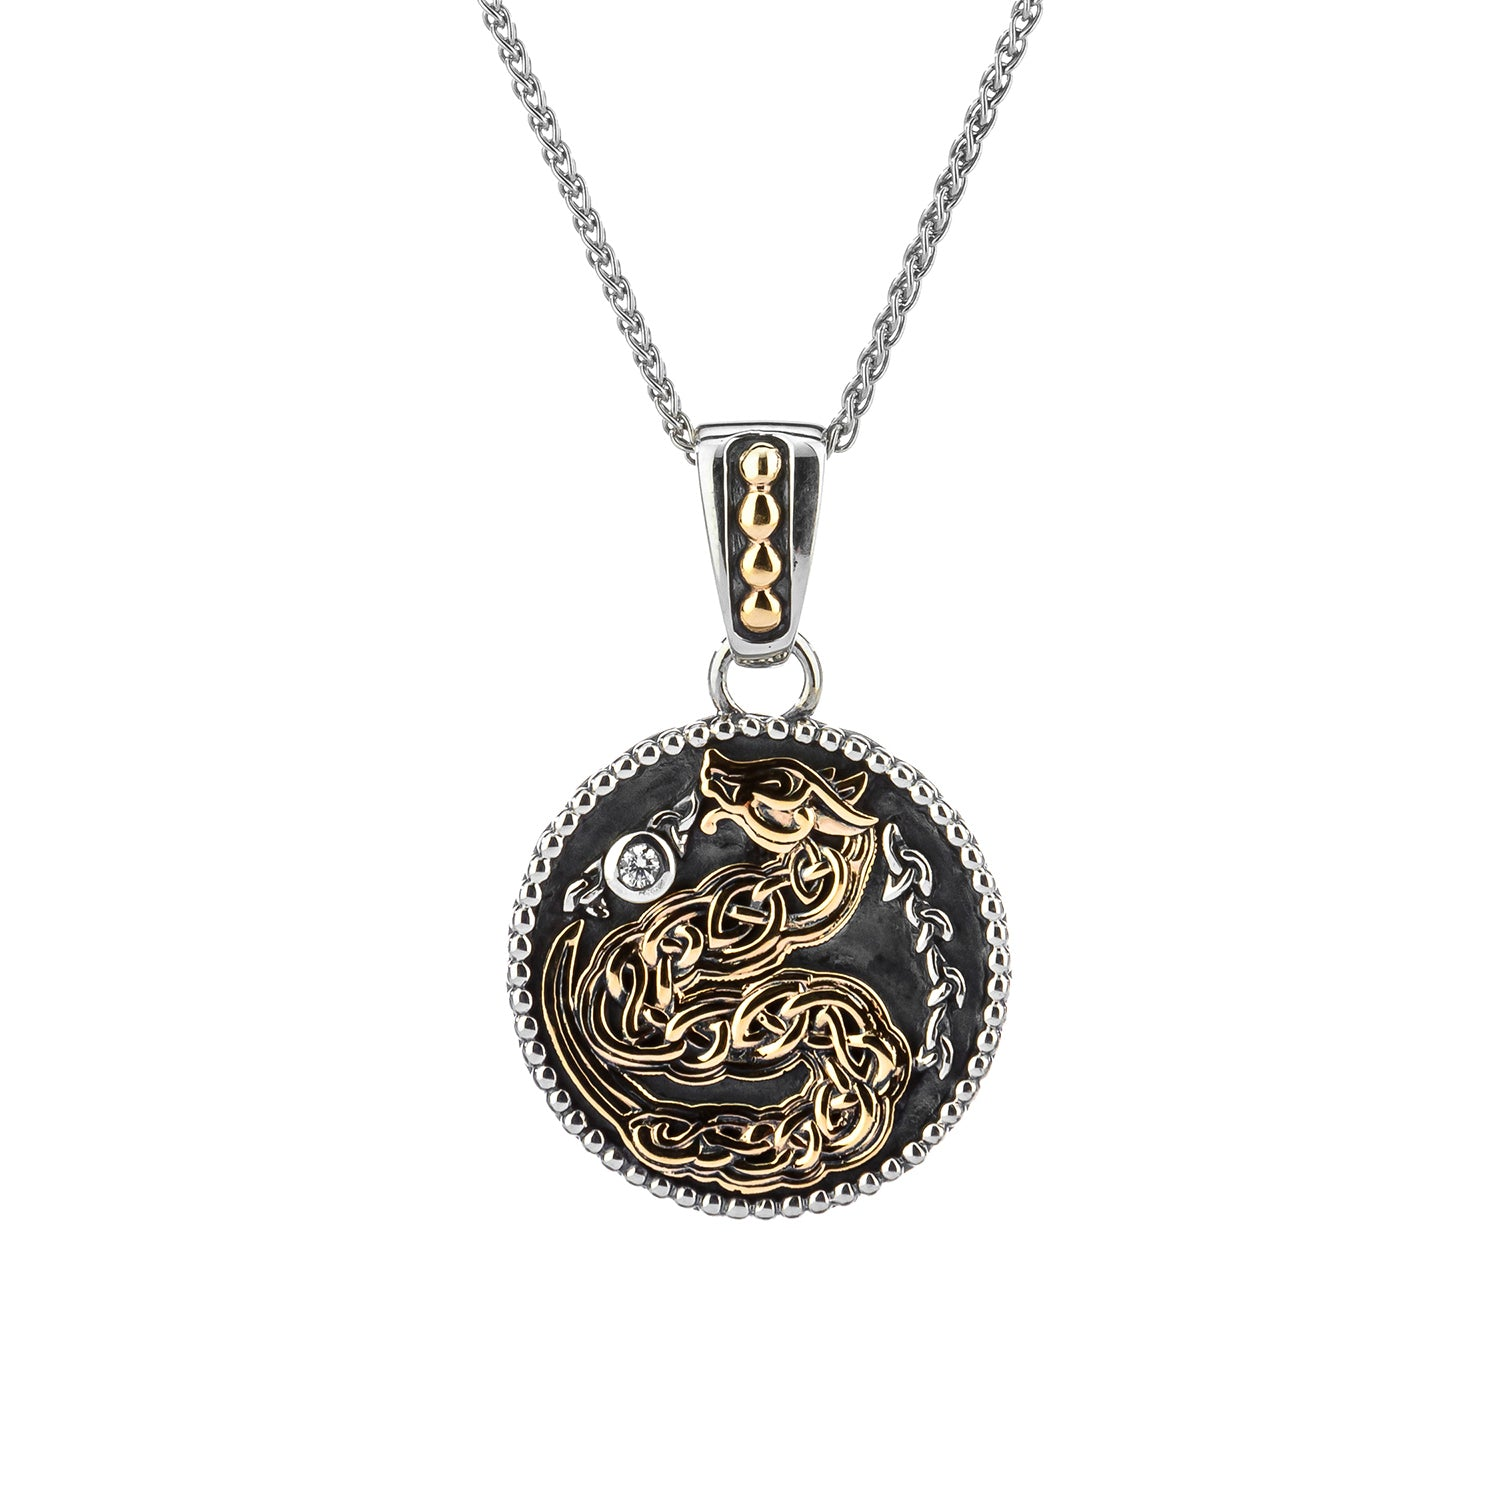 Pendant Oxidized 10k CZ Medallion Reversible Dragon Small Pendant from welch and company jewelers near syracuse ny